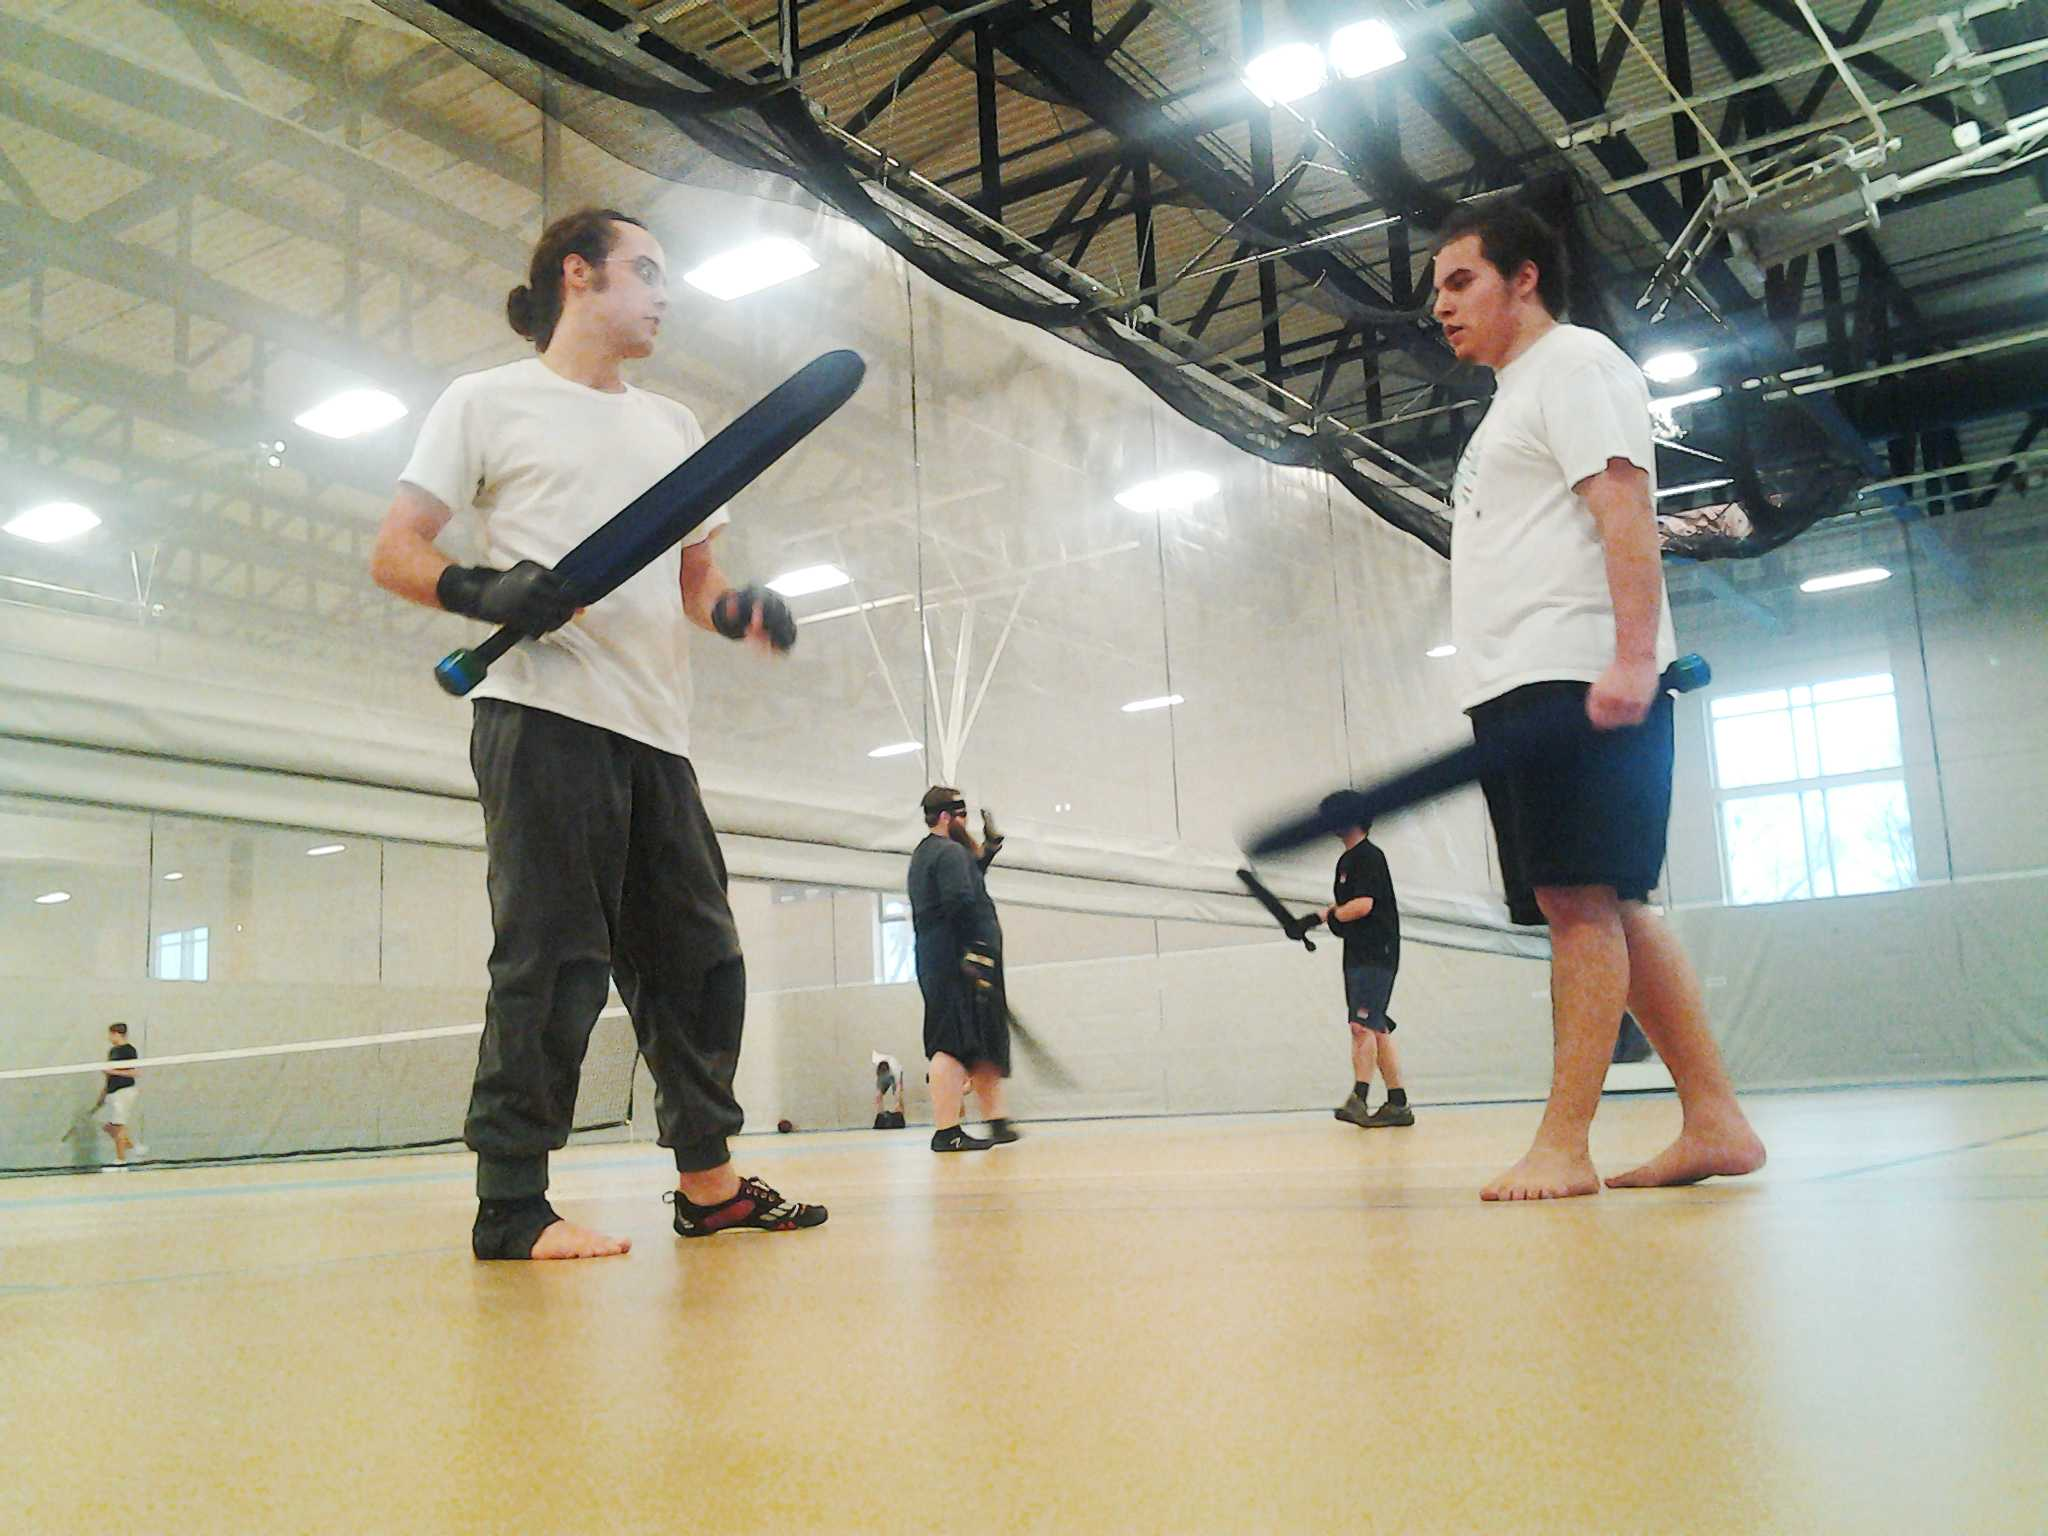 AJ Zozulin '14 (left), who helped found Mac's Dagorhir club after starting a similar group at his high school, holds a fighting stance in a Saturday afternoon practice. Waabanang Hermes  '17 (right), is about to embark in a practice duel.